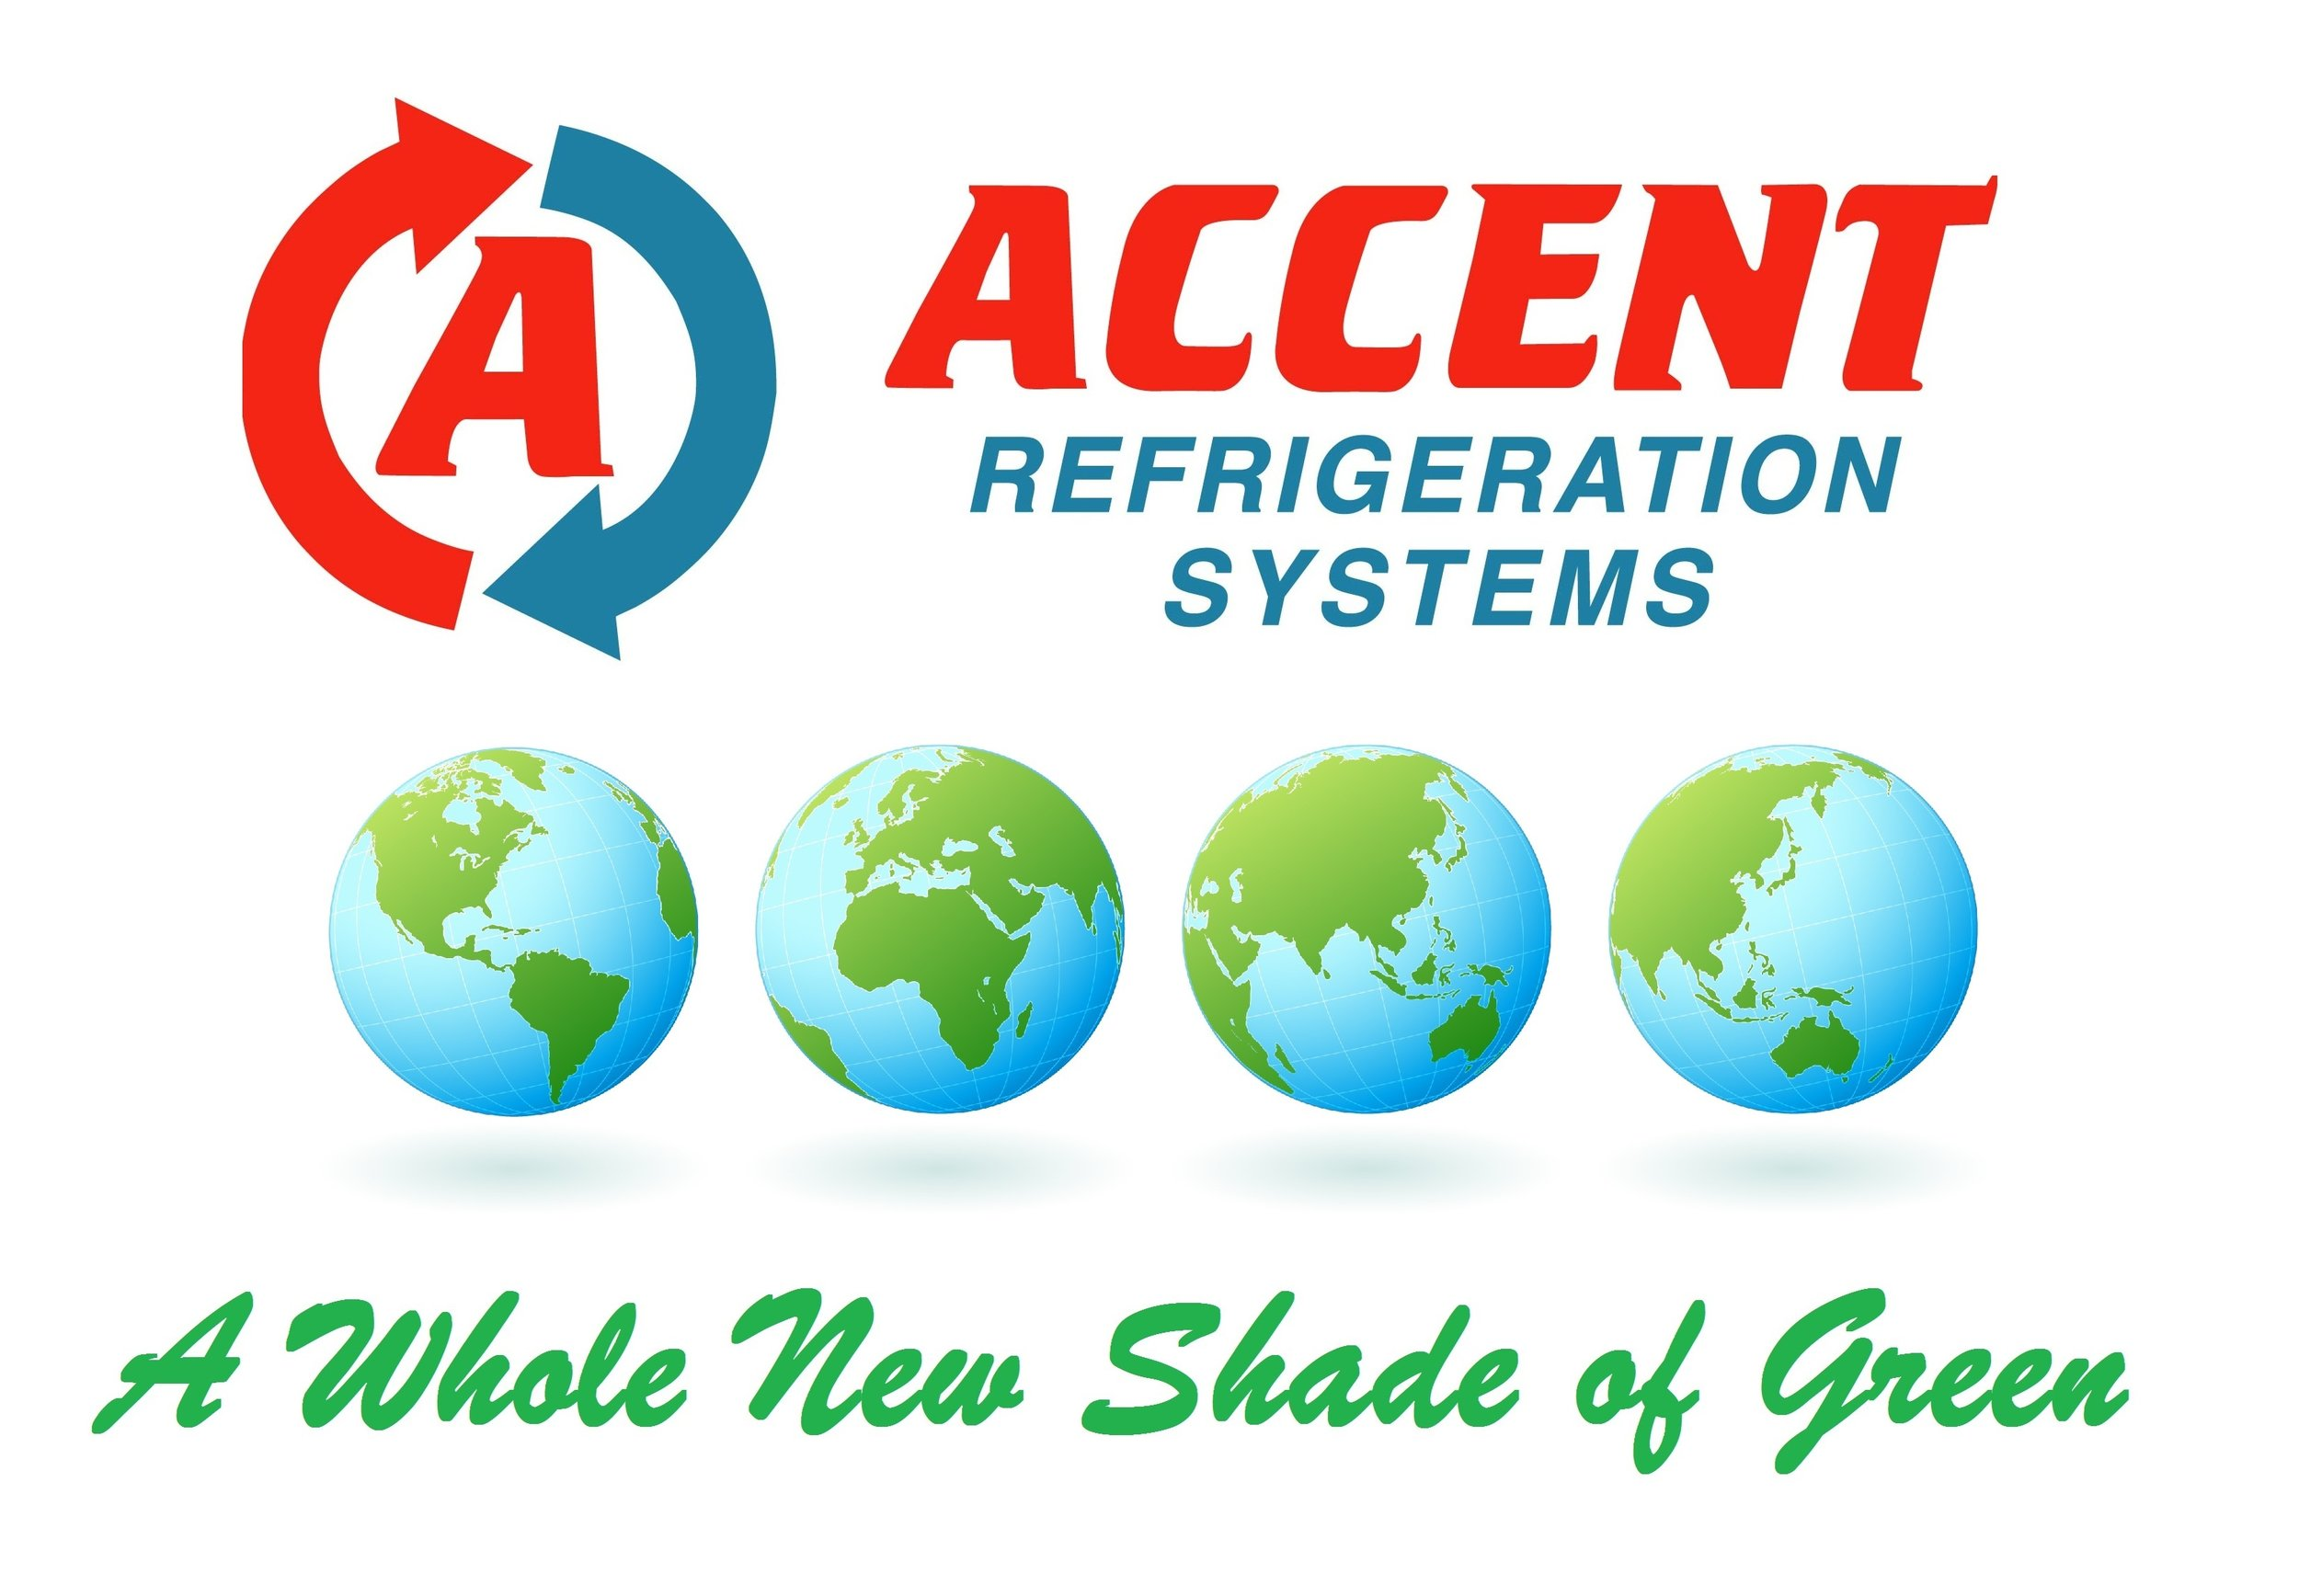 Accent-A Whole New Shade of Green.jpg